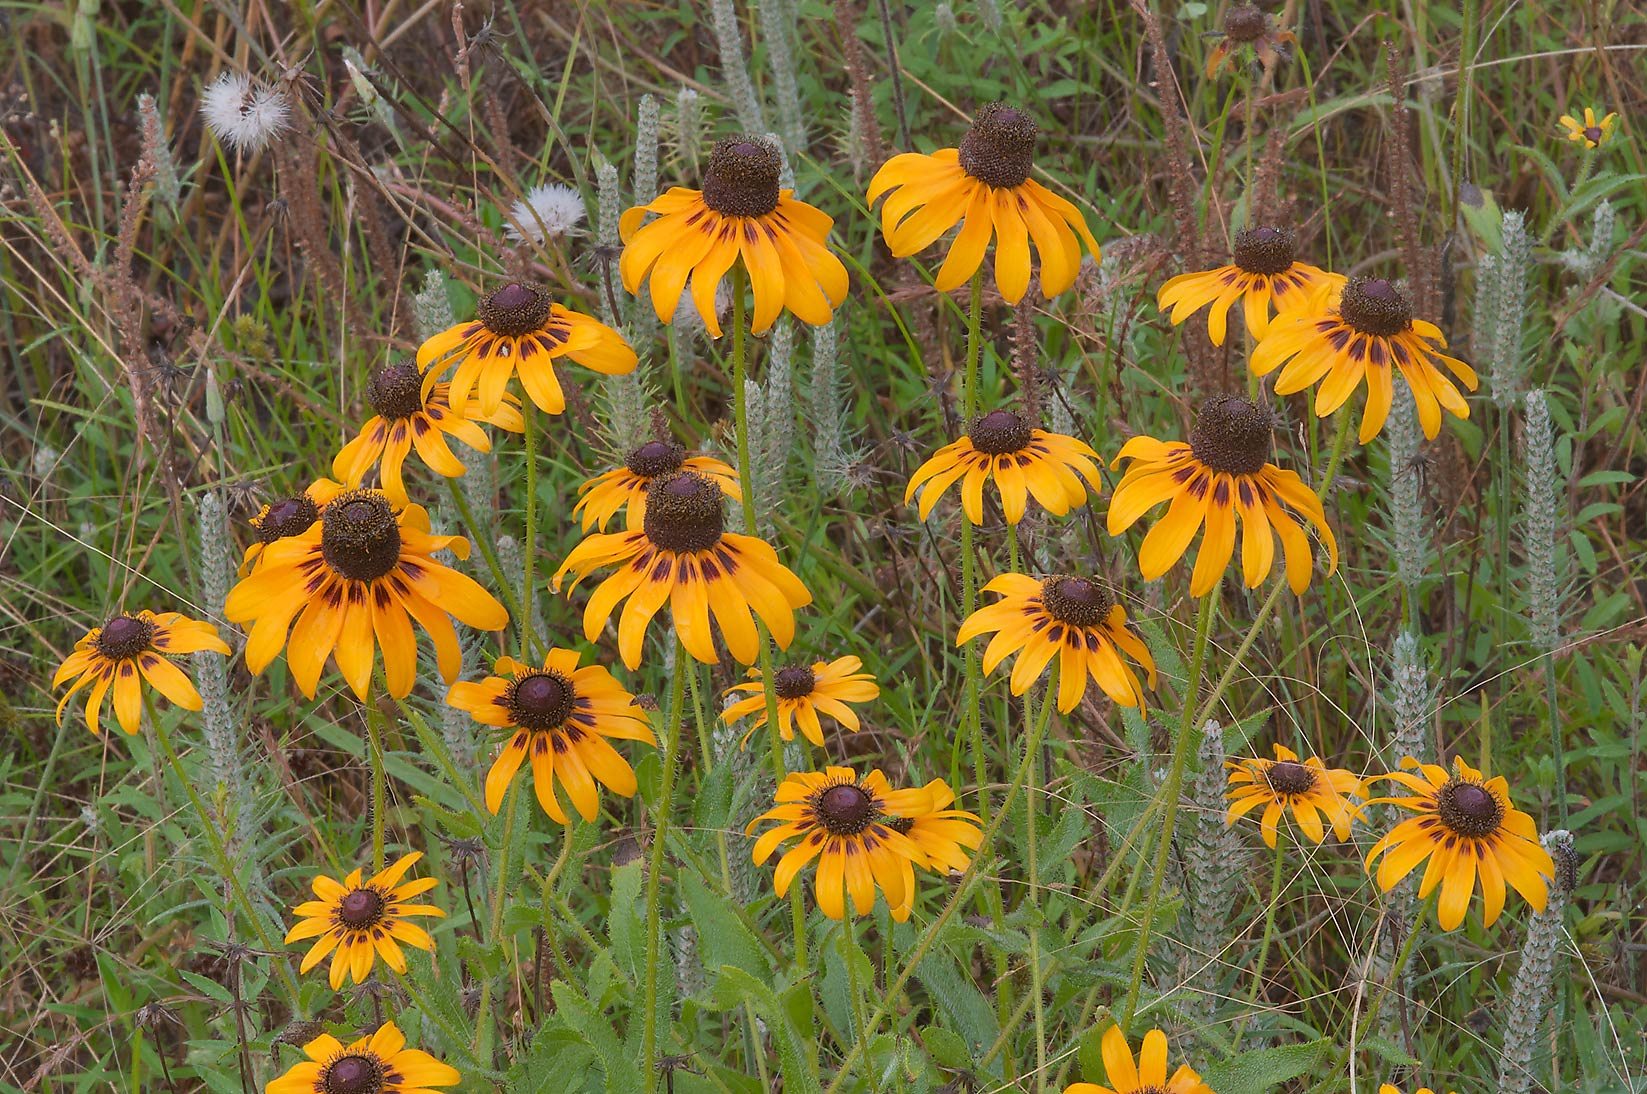 Black eyed susan (Rudbeckia hirta) in Lick Creek Park. College Station, Texas